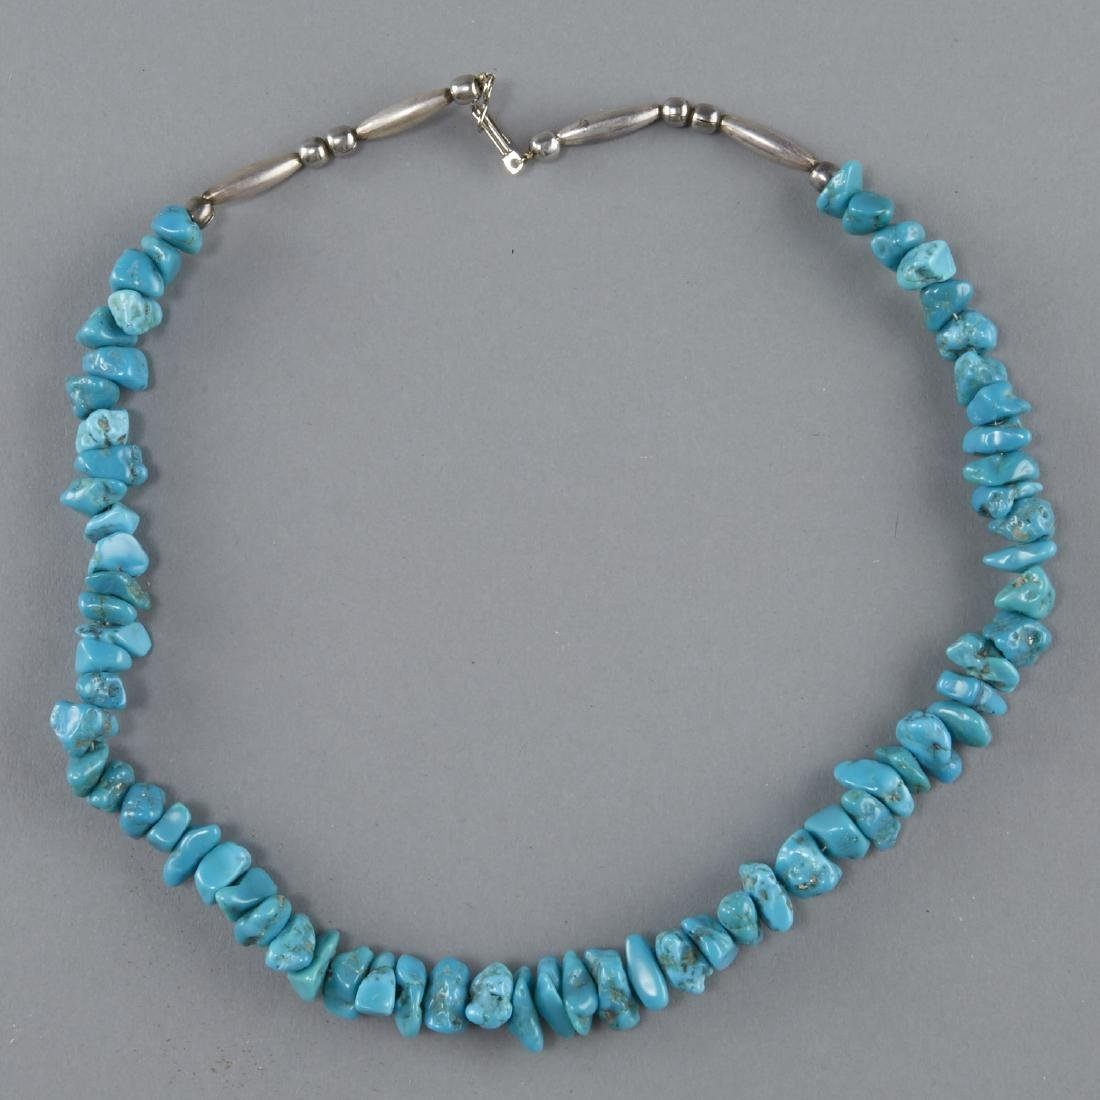 Southwestern Jewelry Silver, Turquoise, etc. - 5